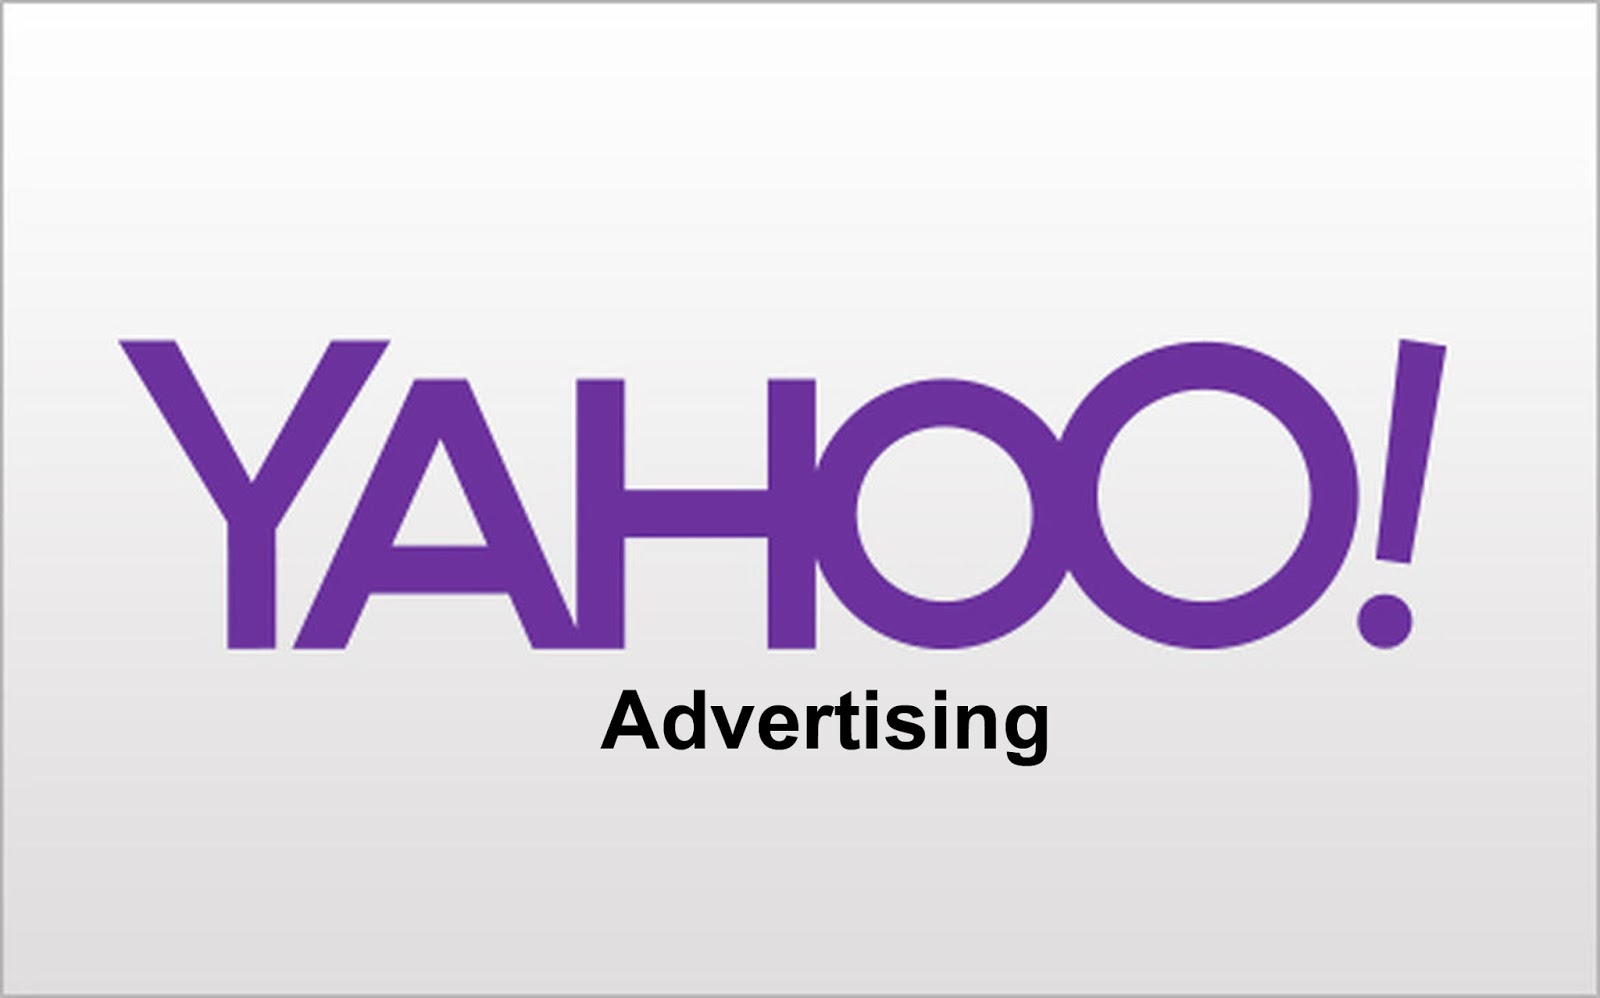 Yahoo Announces its Own Product Ads for Search & Display 1